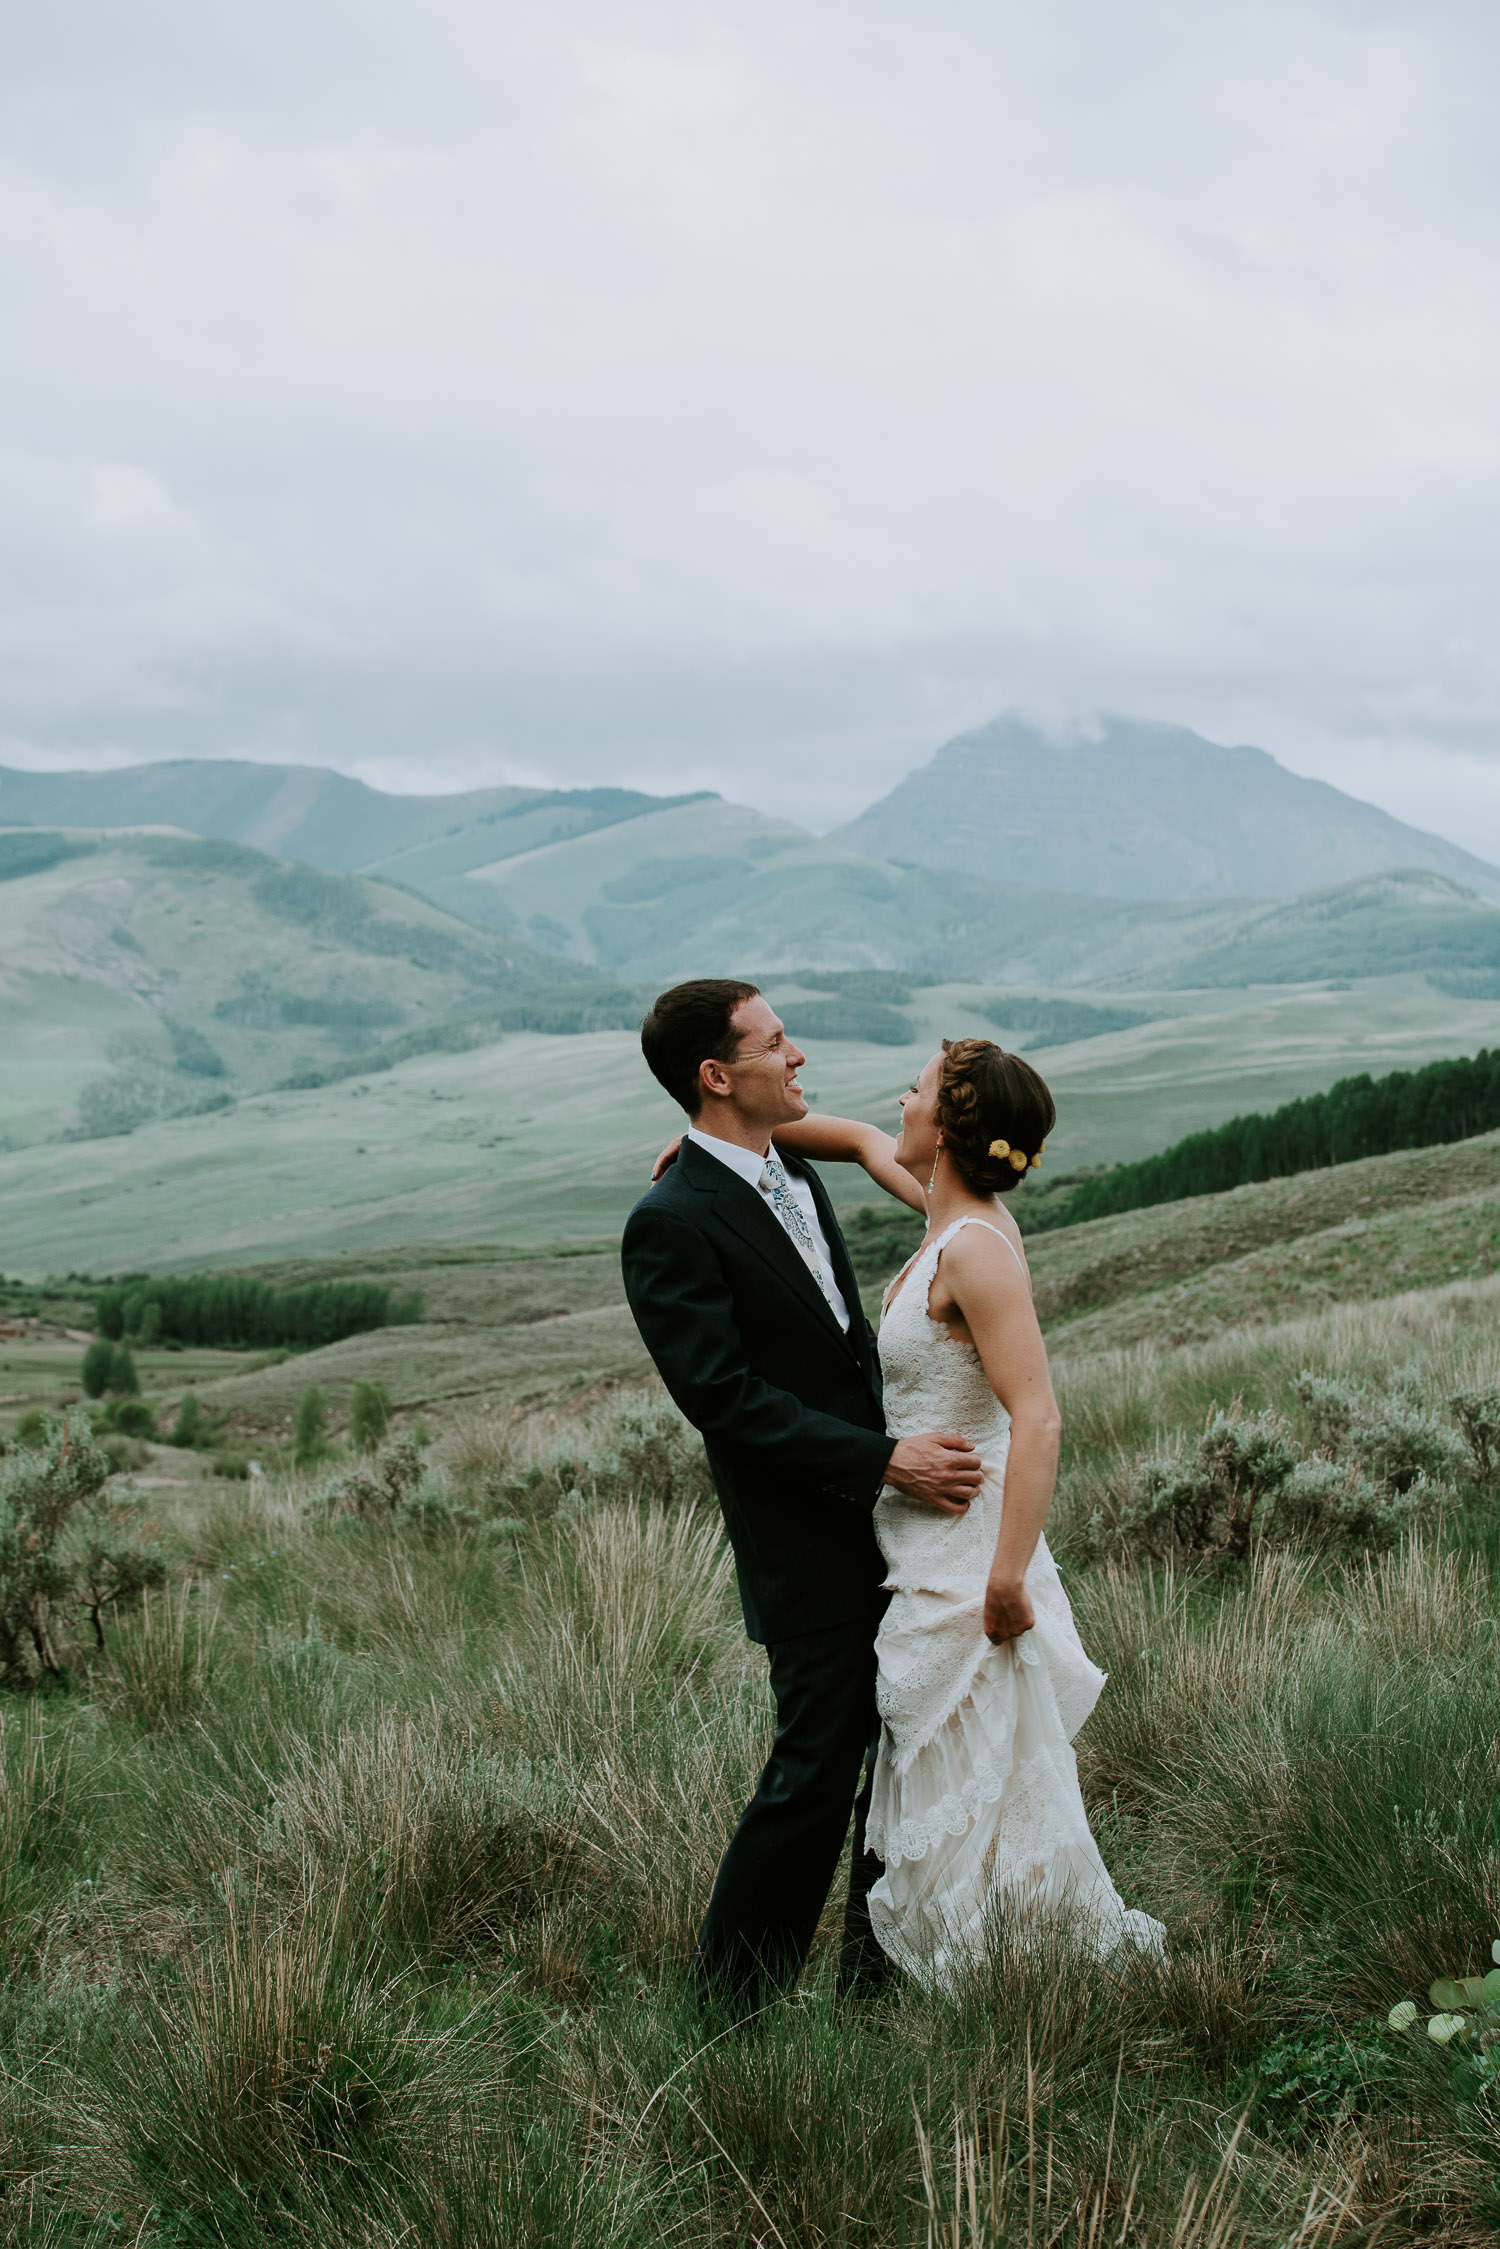 Colorado Wedding Photography, Intimate Wedding, Colorado elopement photography, crested butte wedding, bride groom dancing